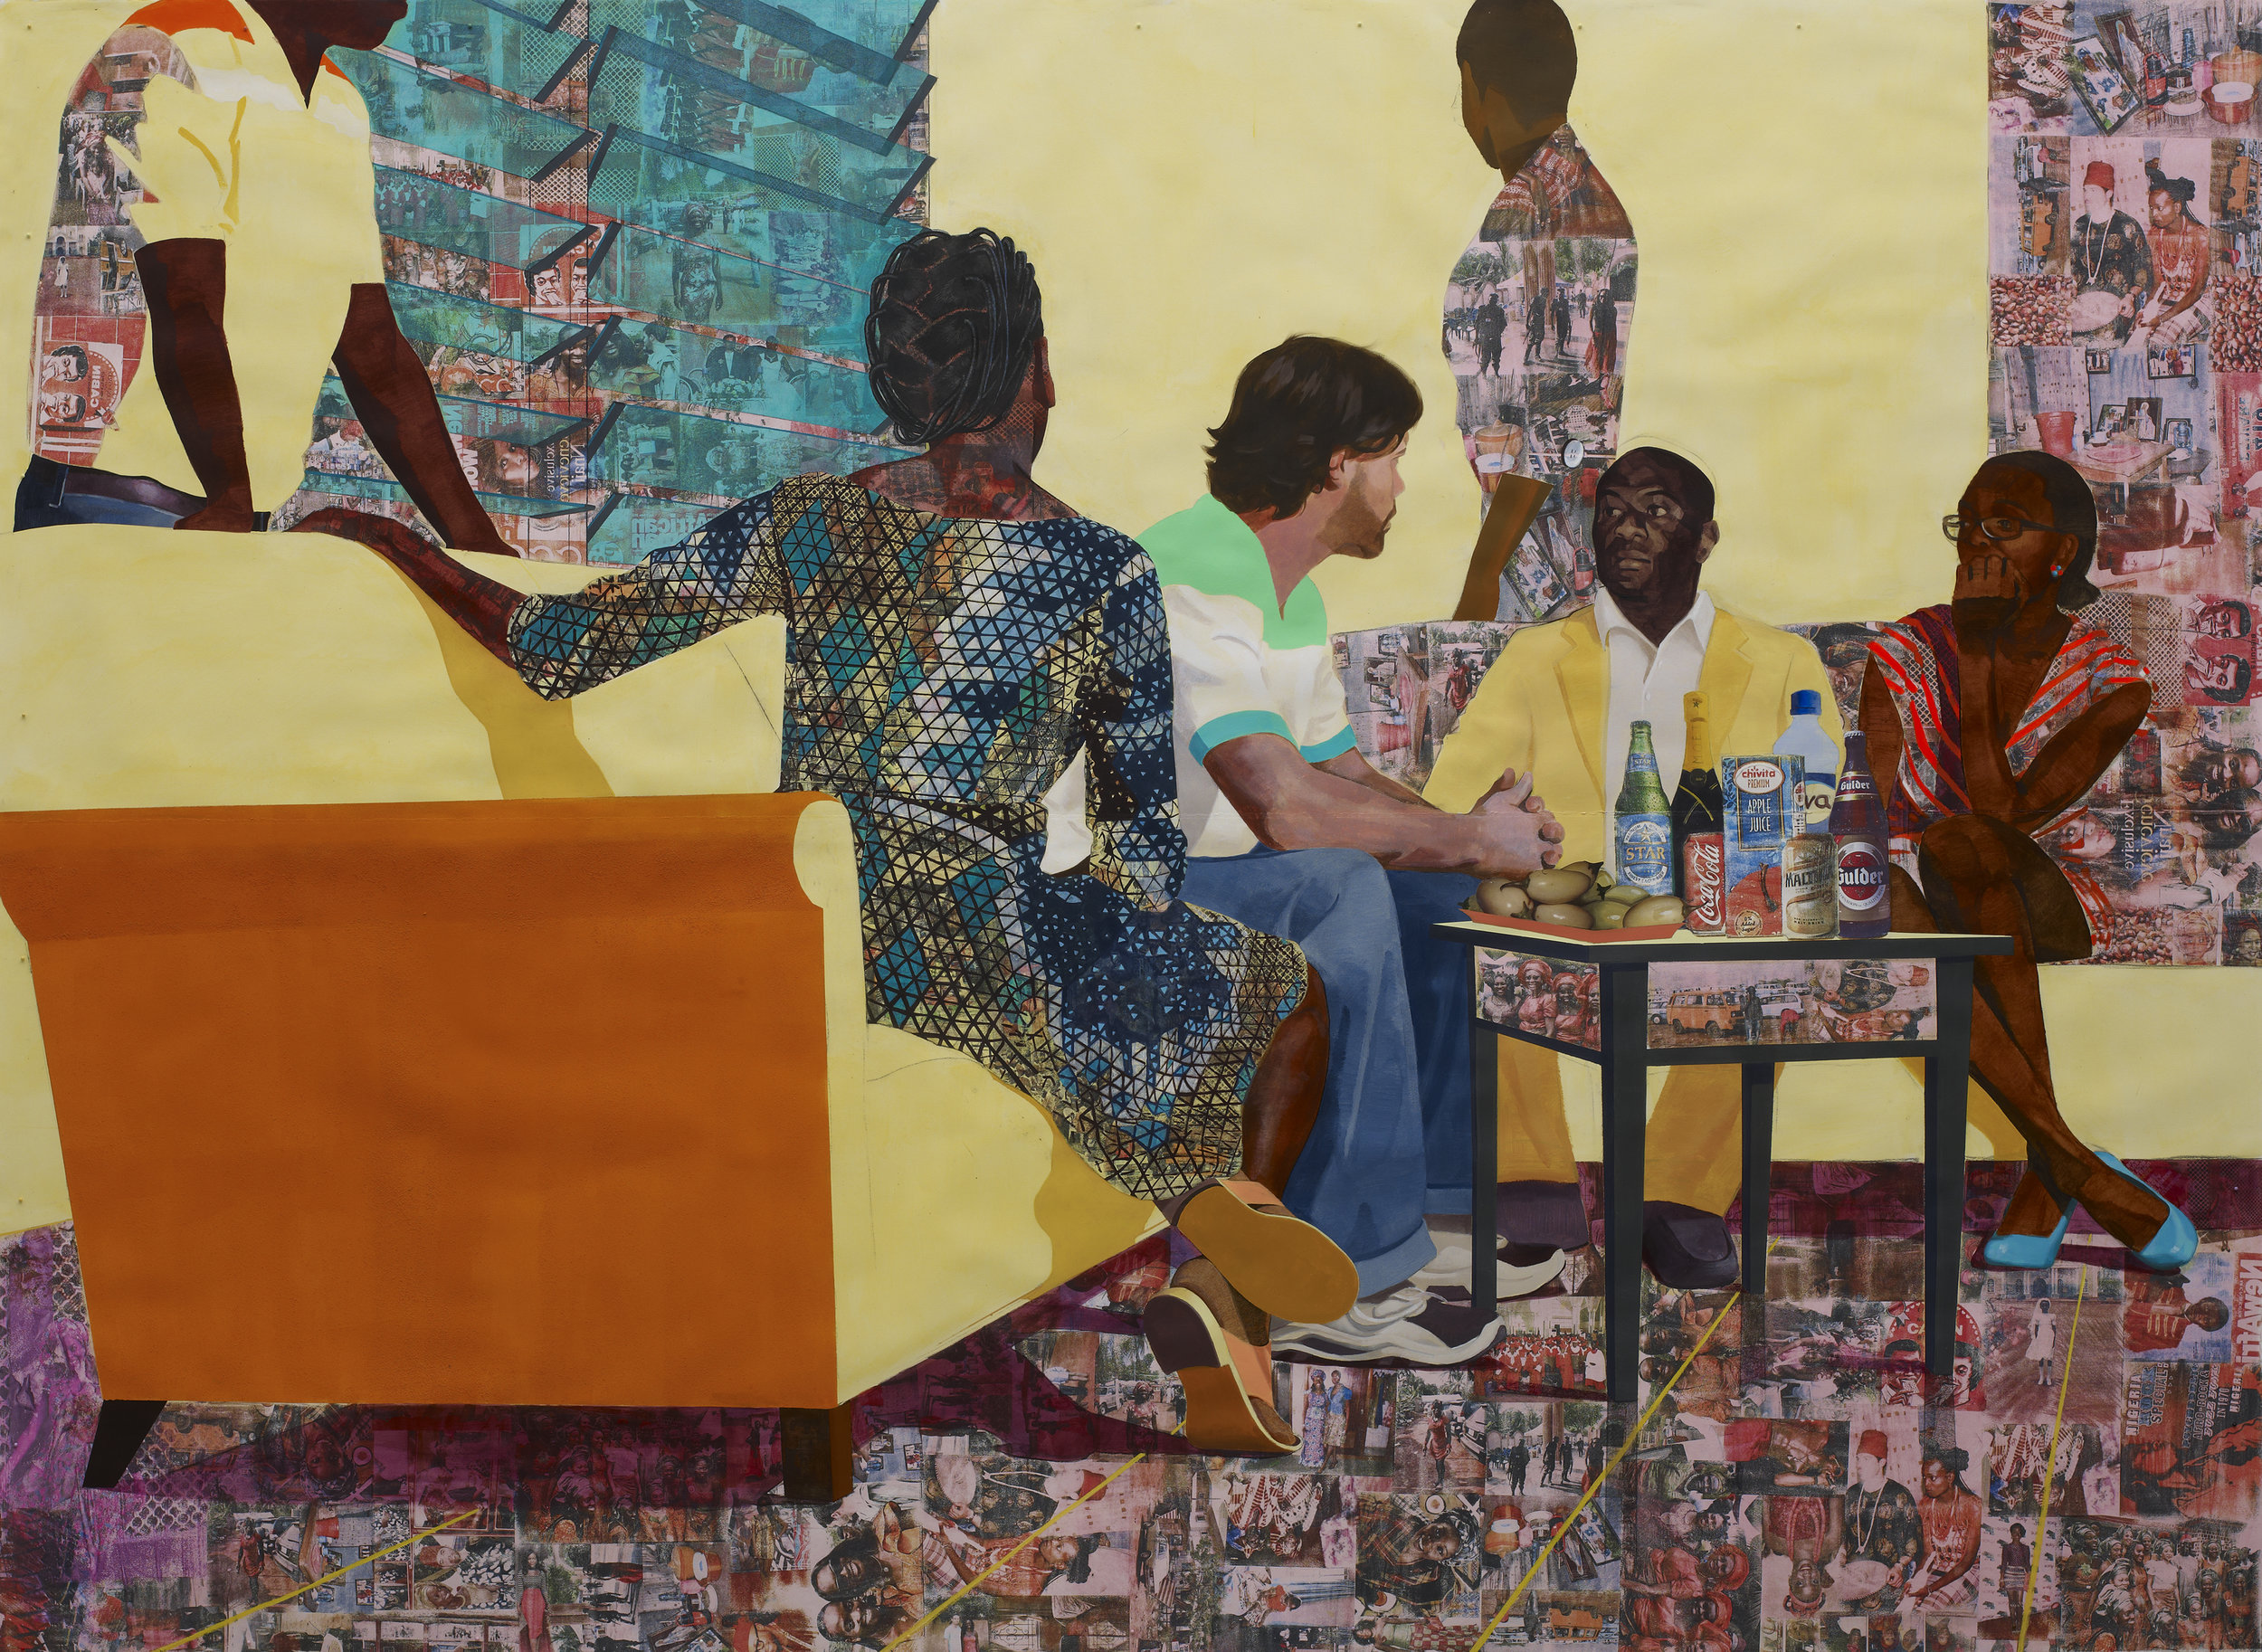 Something Split and New, 2013 Acrylic, transfers, colored pencil, pastel, charcoal, marble dust and collage on paper, 7 ft.× 9.25 ft. © Njideka Akunyili Crosby Courtesy the artist and Victoria Miro, London/Venice